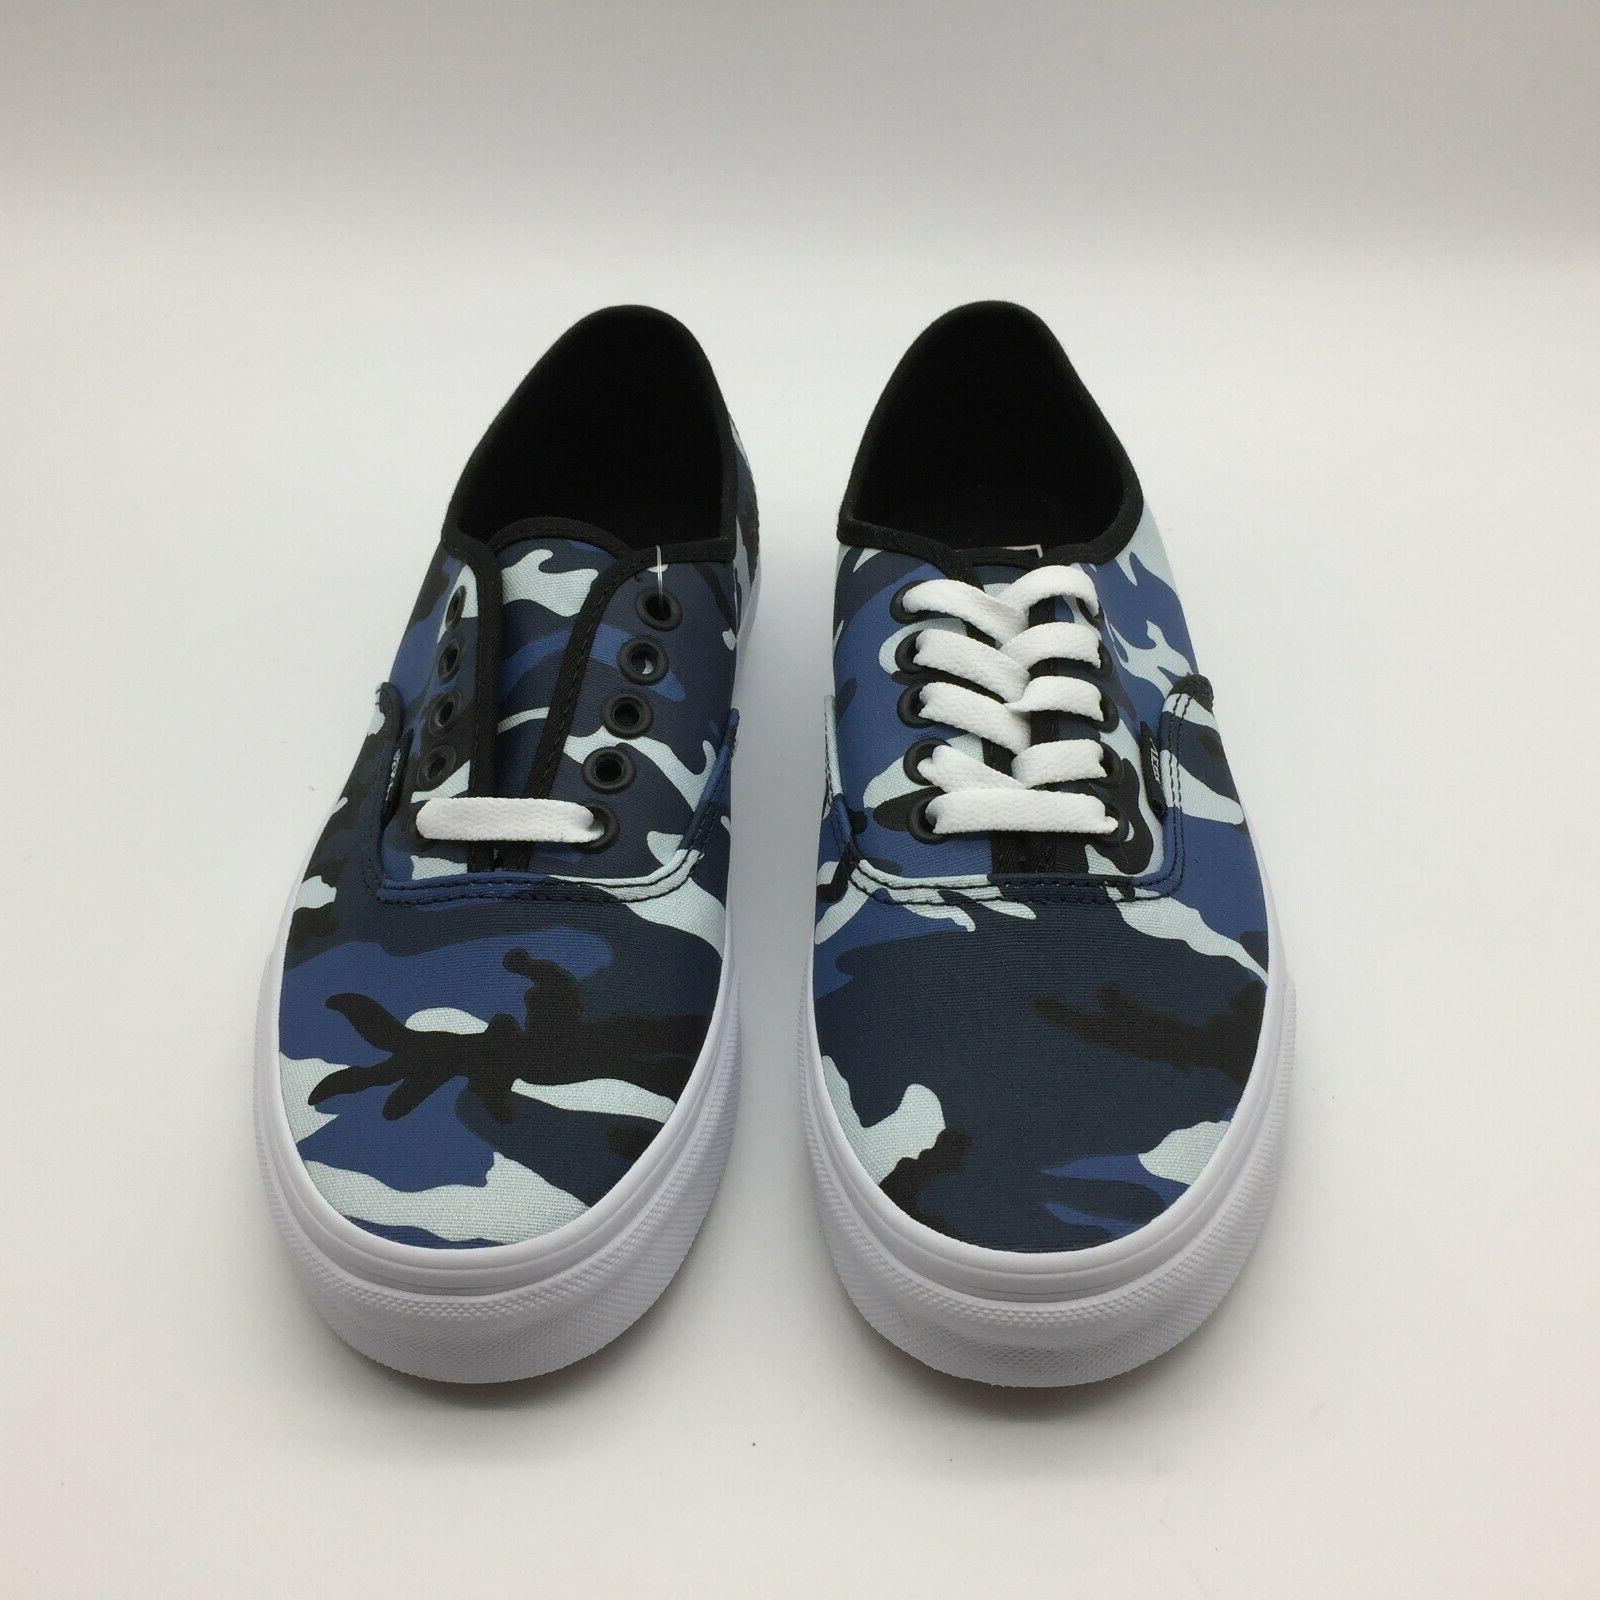 Vans Shoes -- Black/Dress